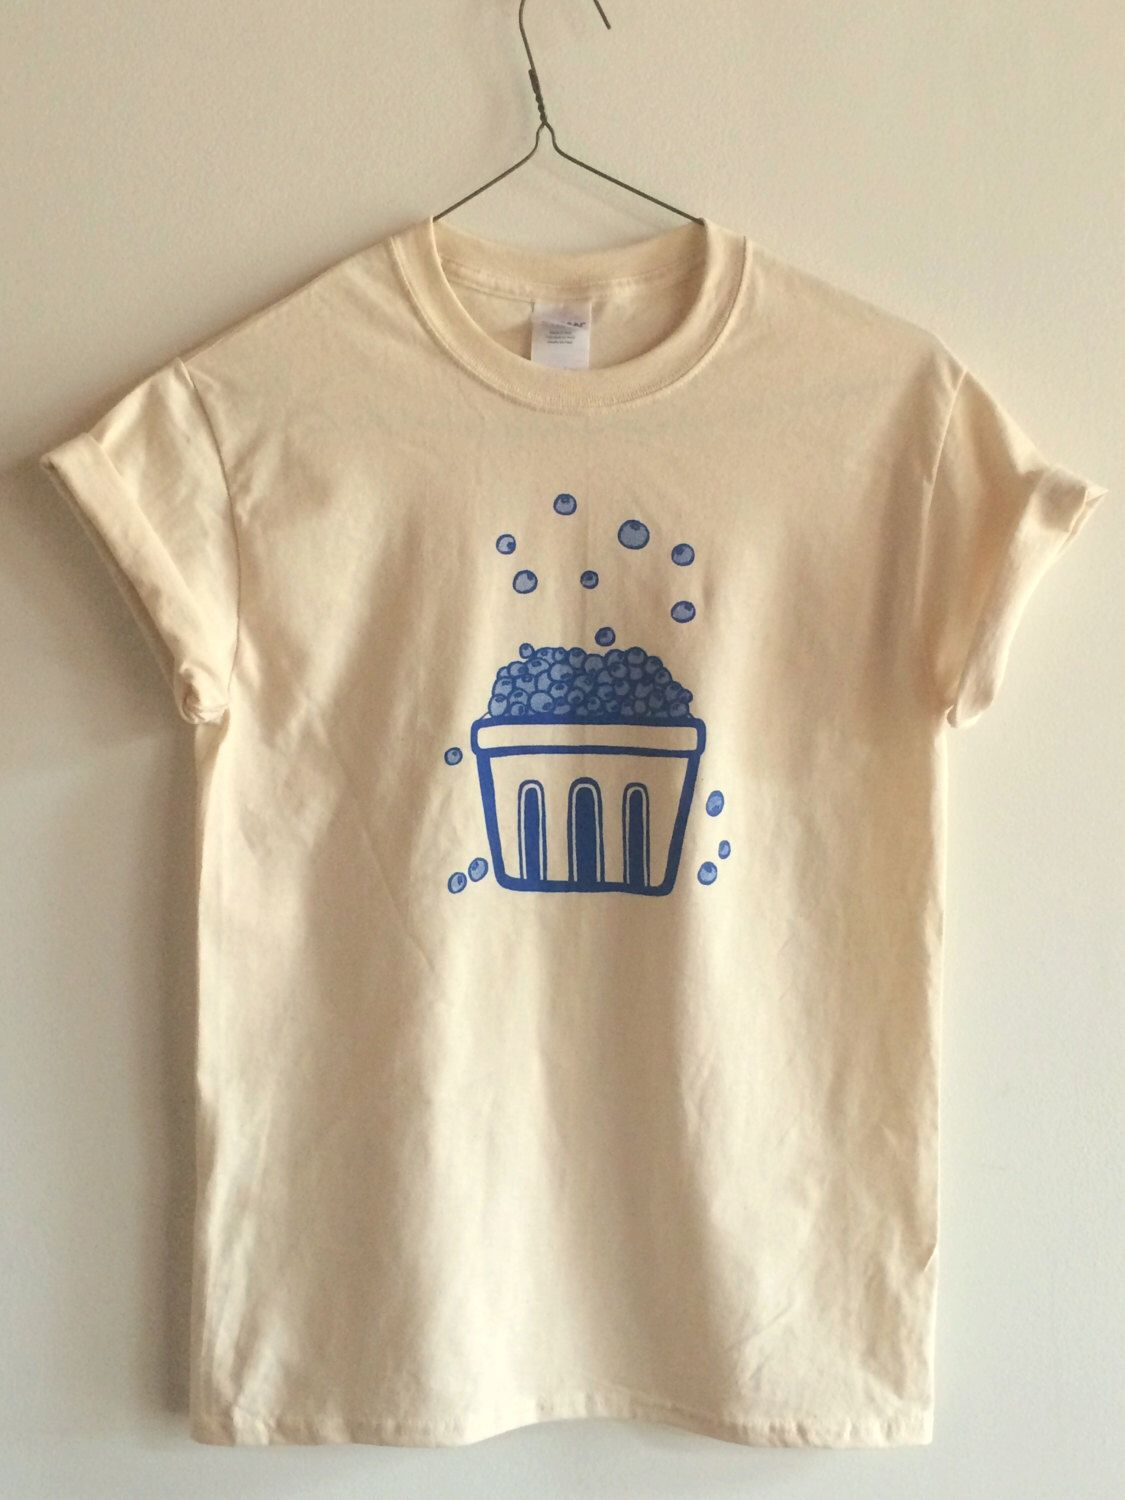 Blueberry T Shirt Food Shirt Graphic Tee Screen Printed T Shirt